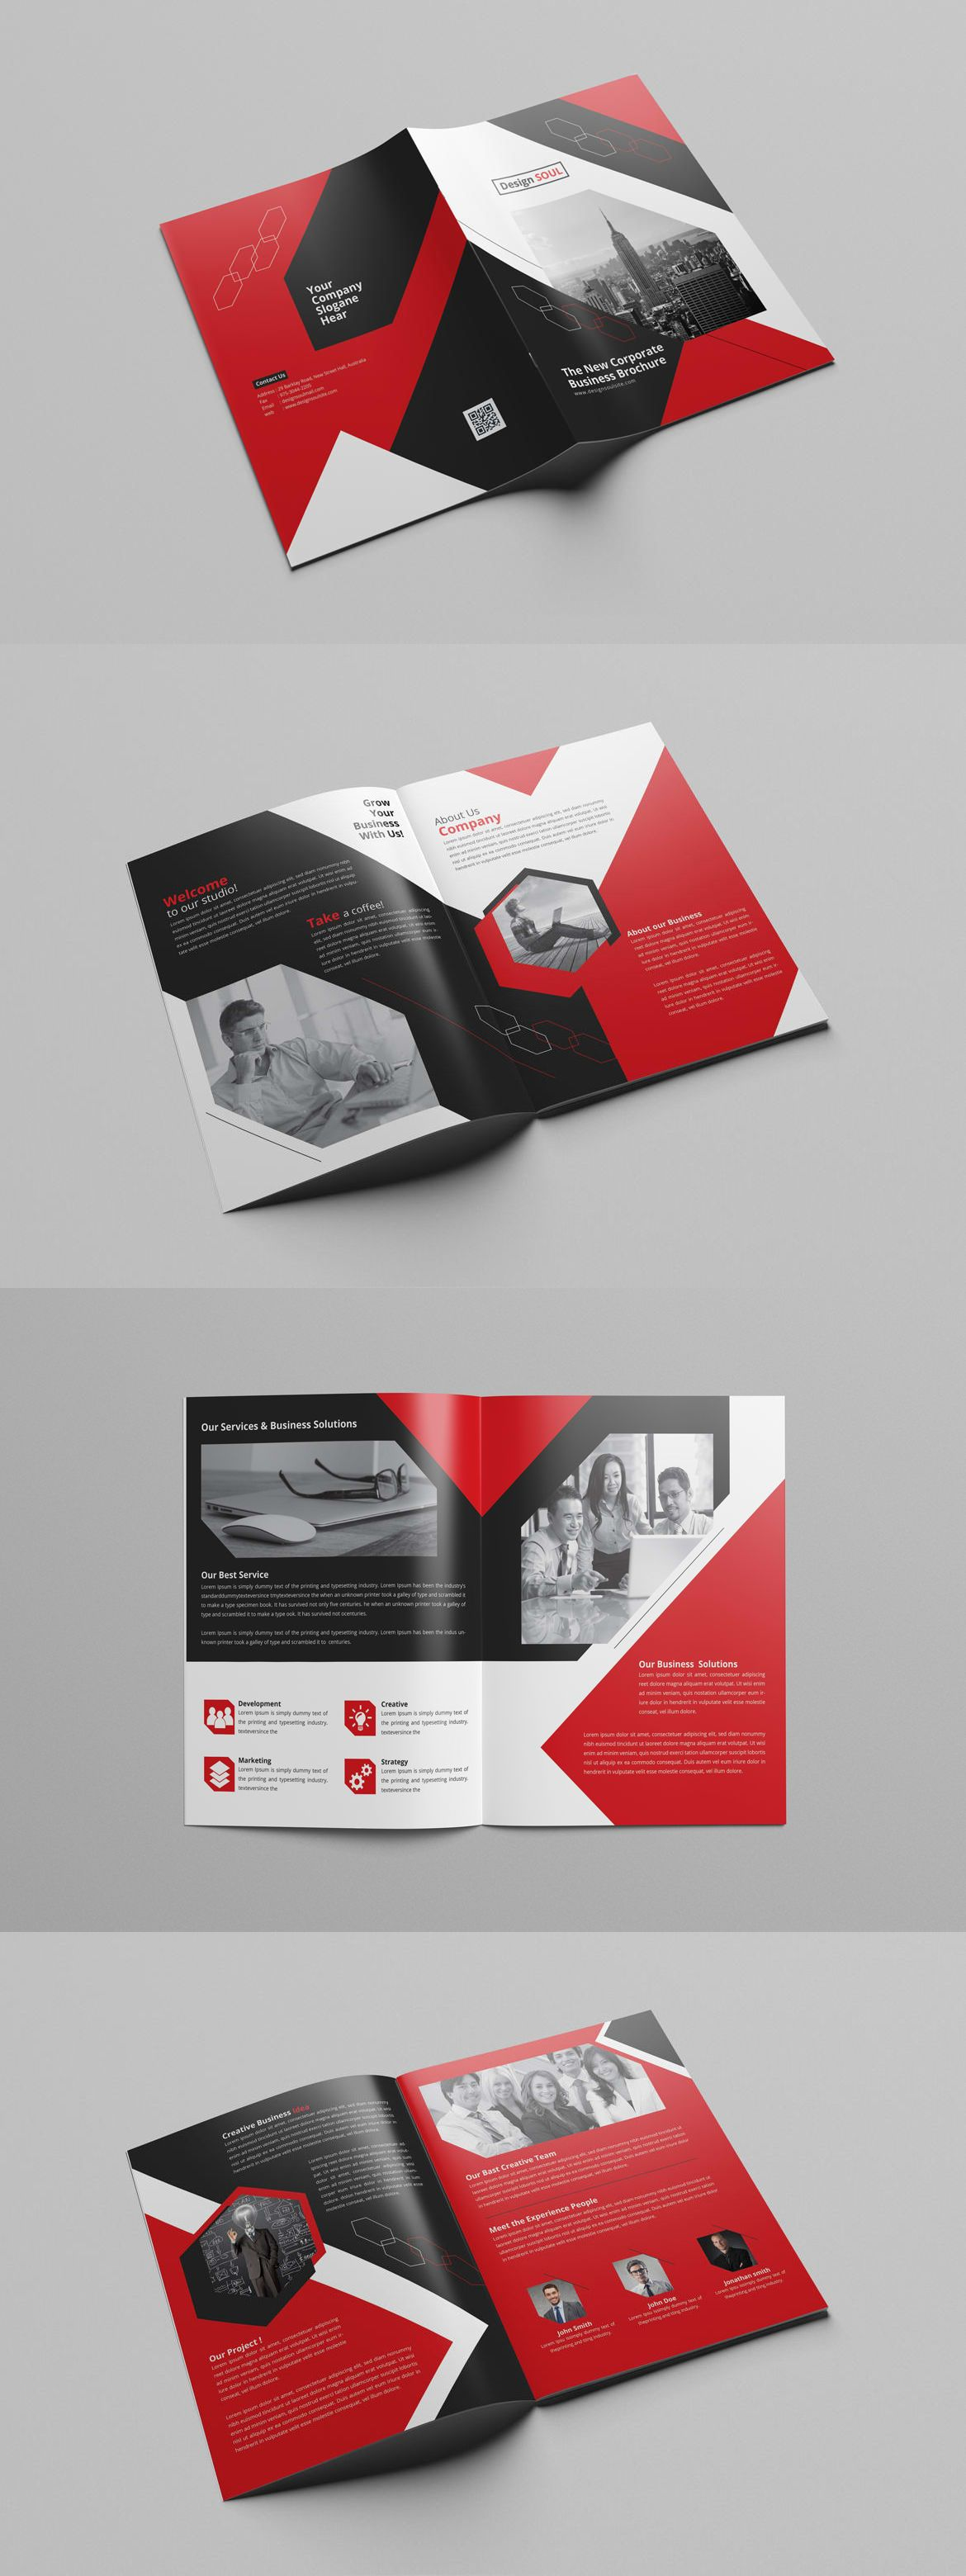 Corporate Brochure Template InDesign INDD Design Pinterest - Indesign templates brochure